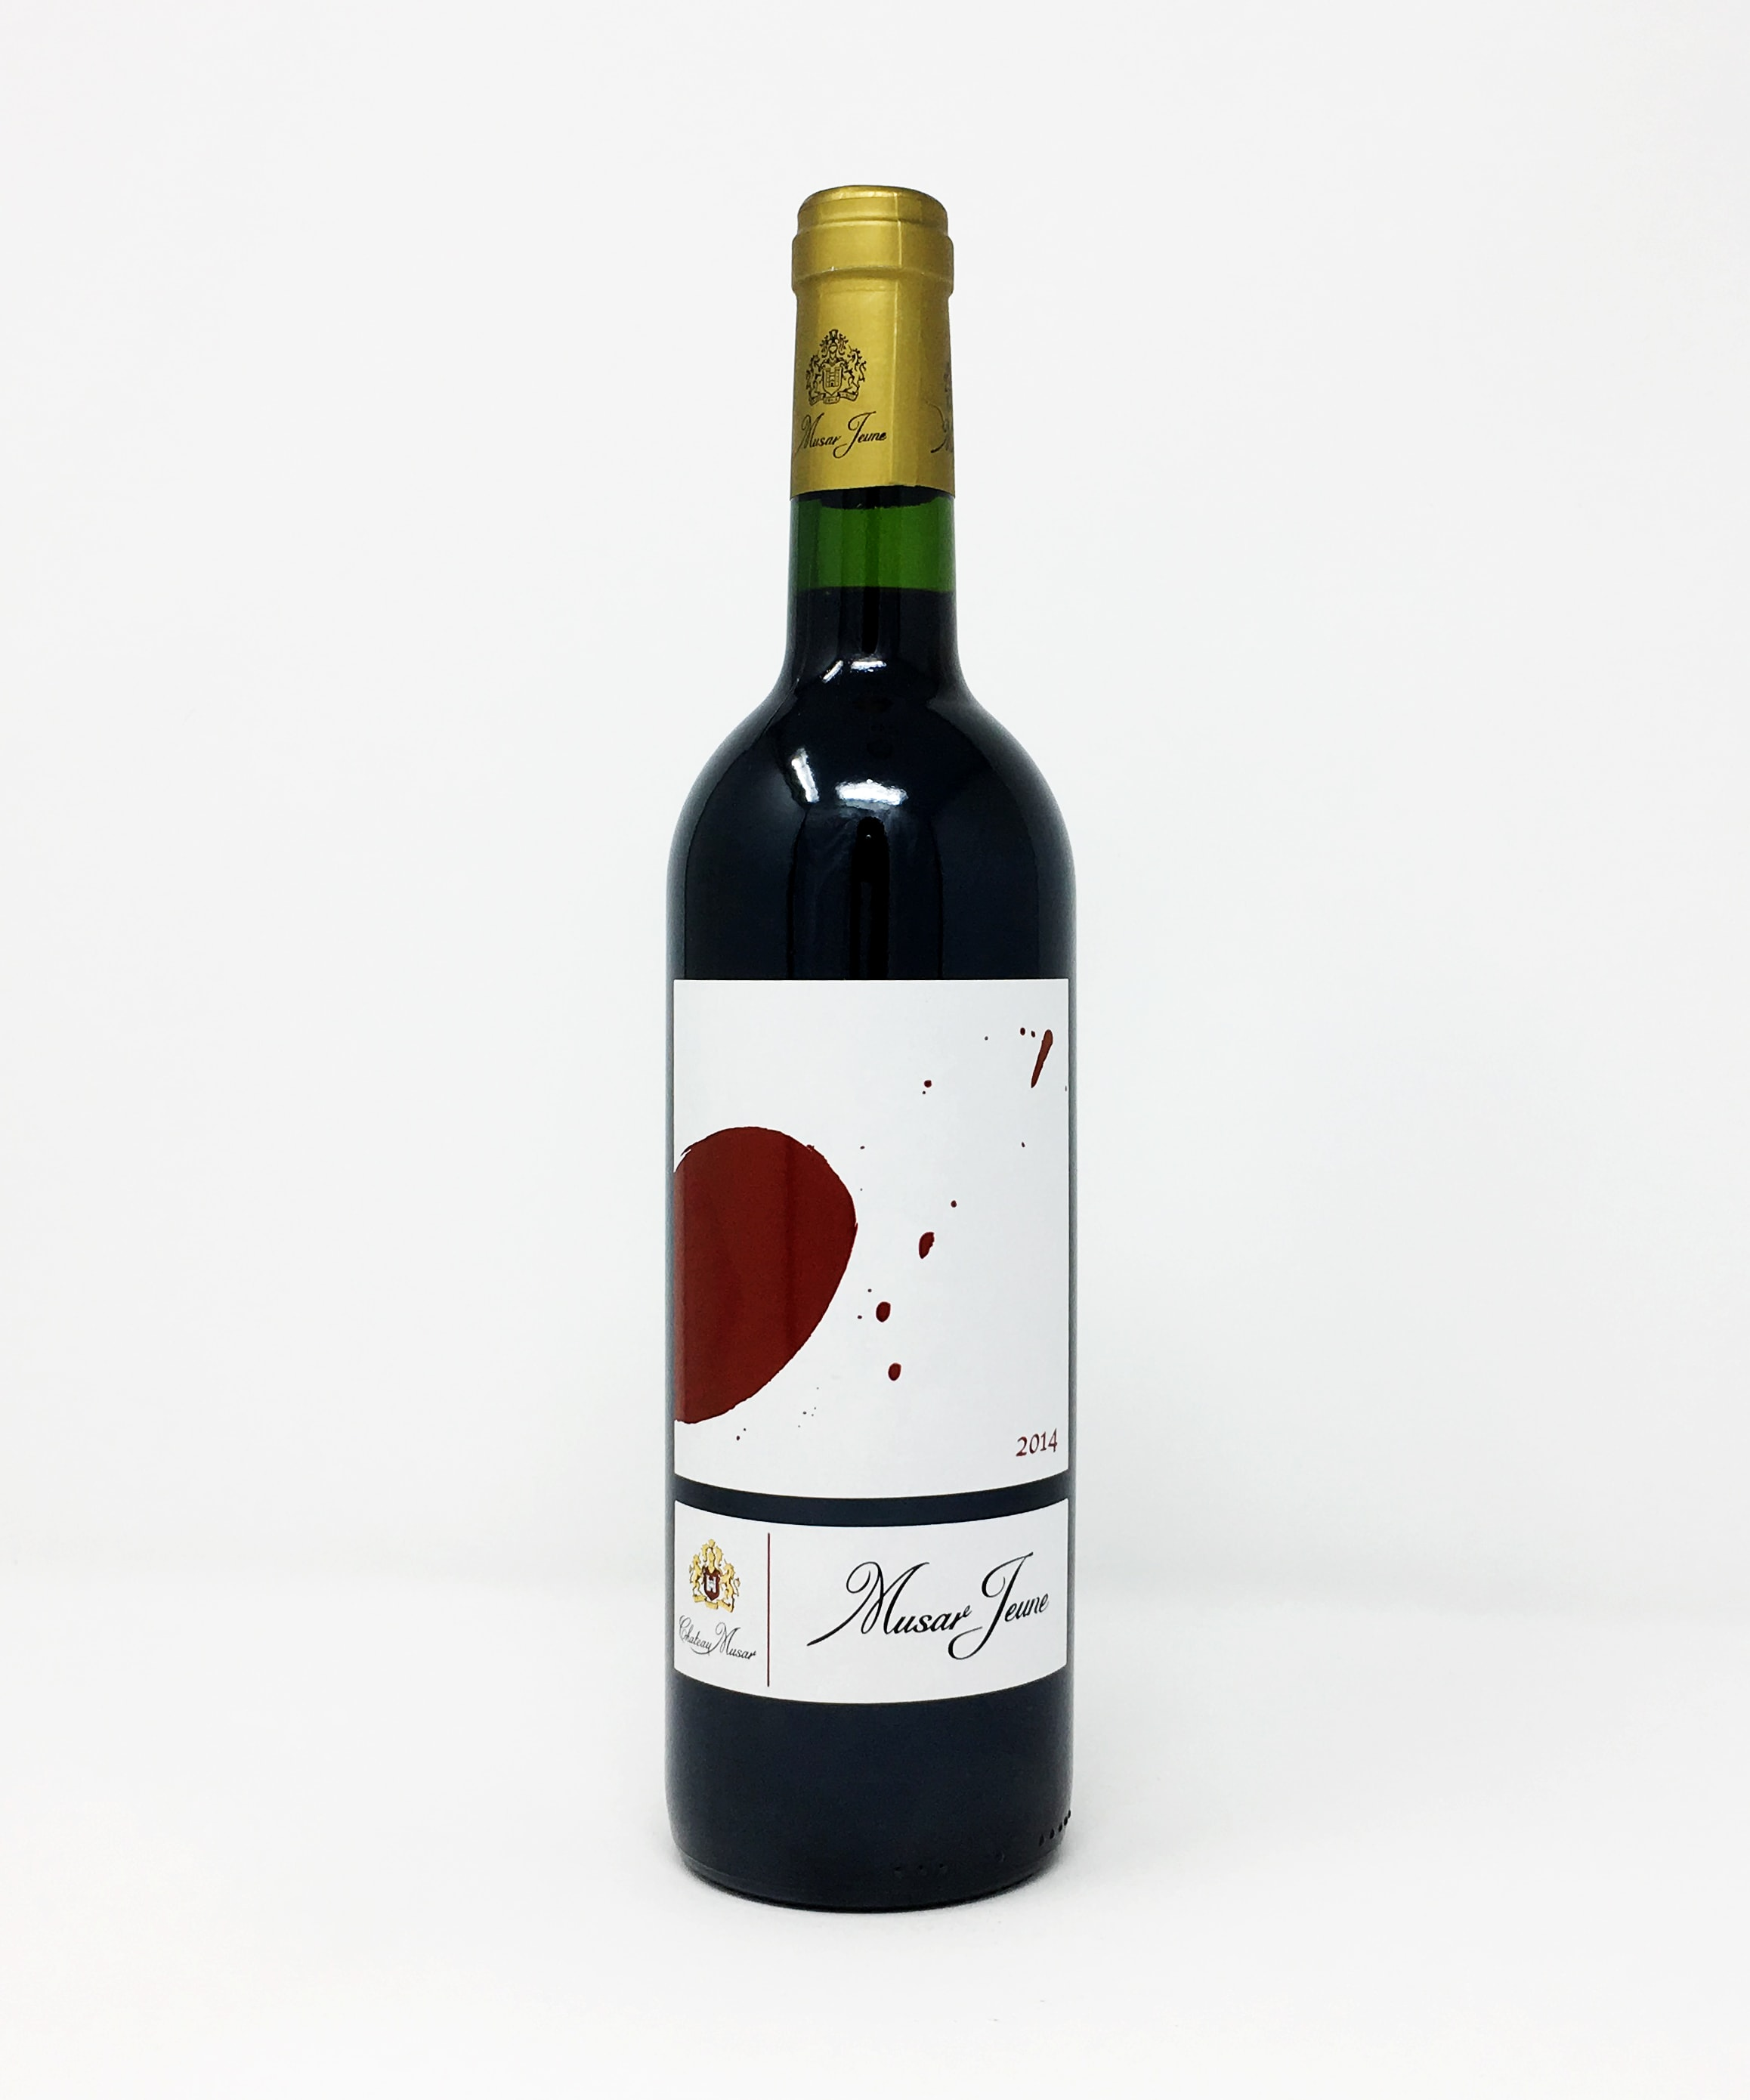 Chateau Musar, Musar Jeune